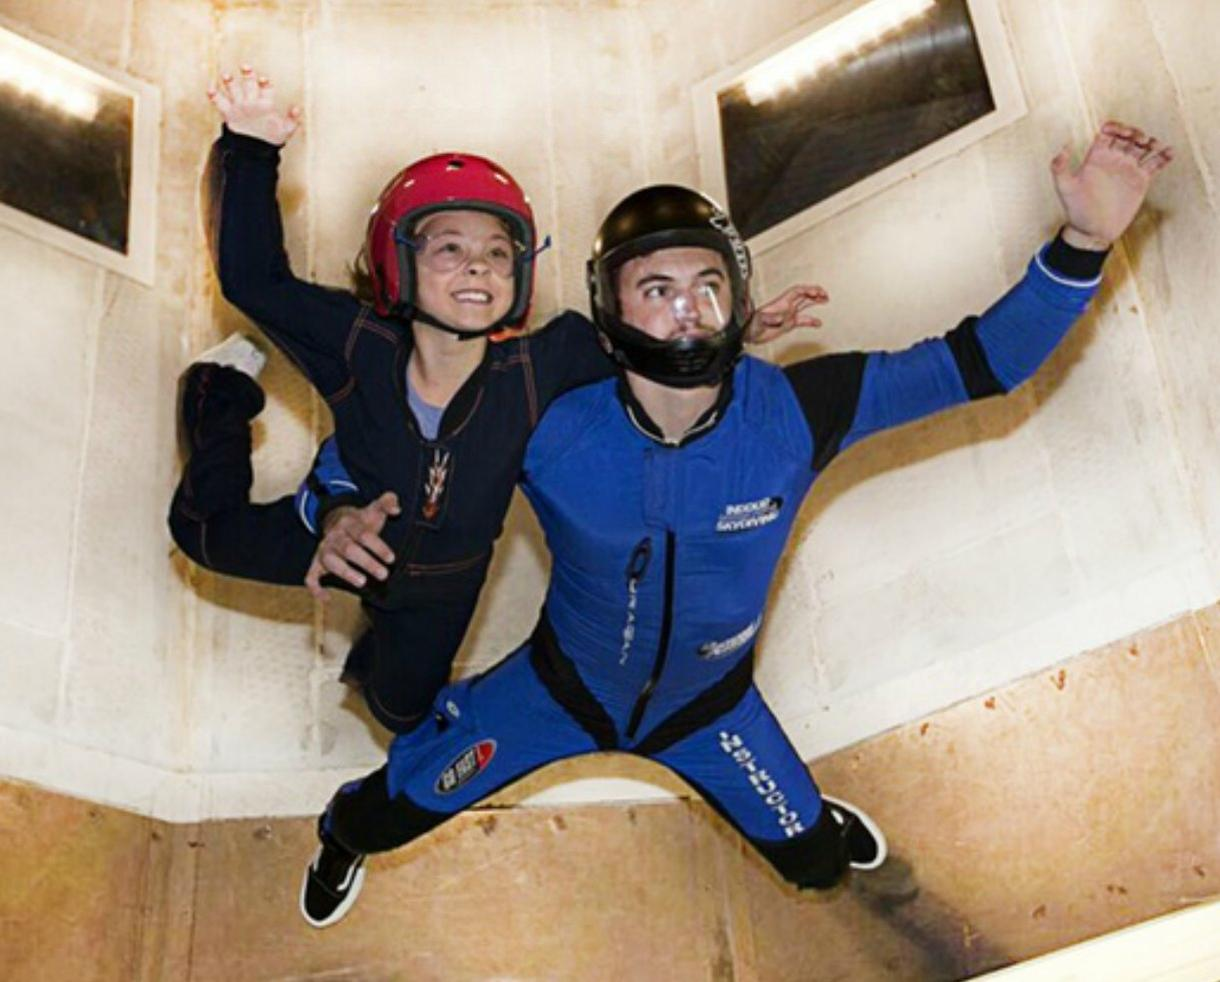 Two Basic Flights for One Person at Skydive Perris Indoor Skydiving